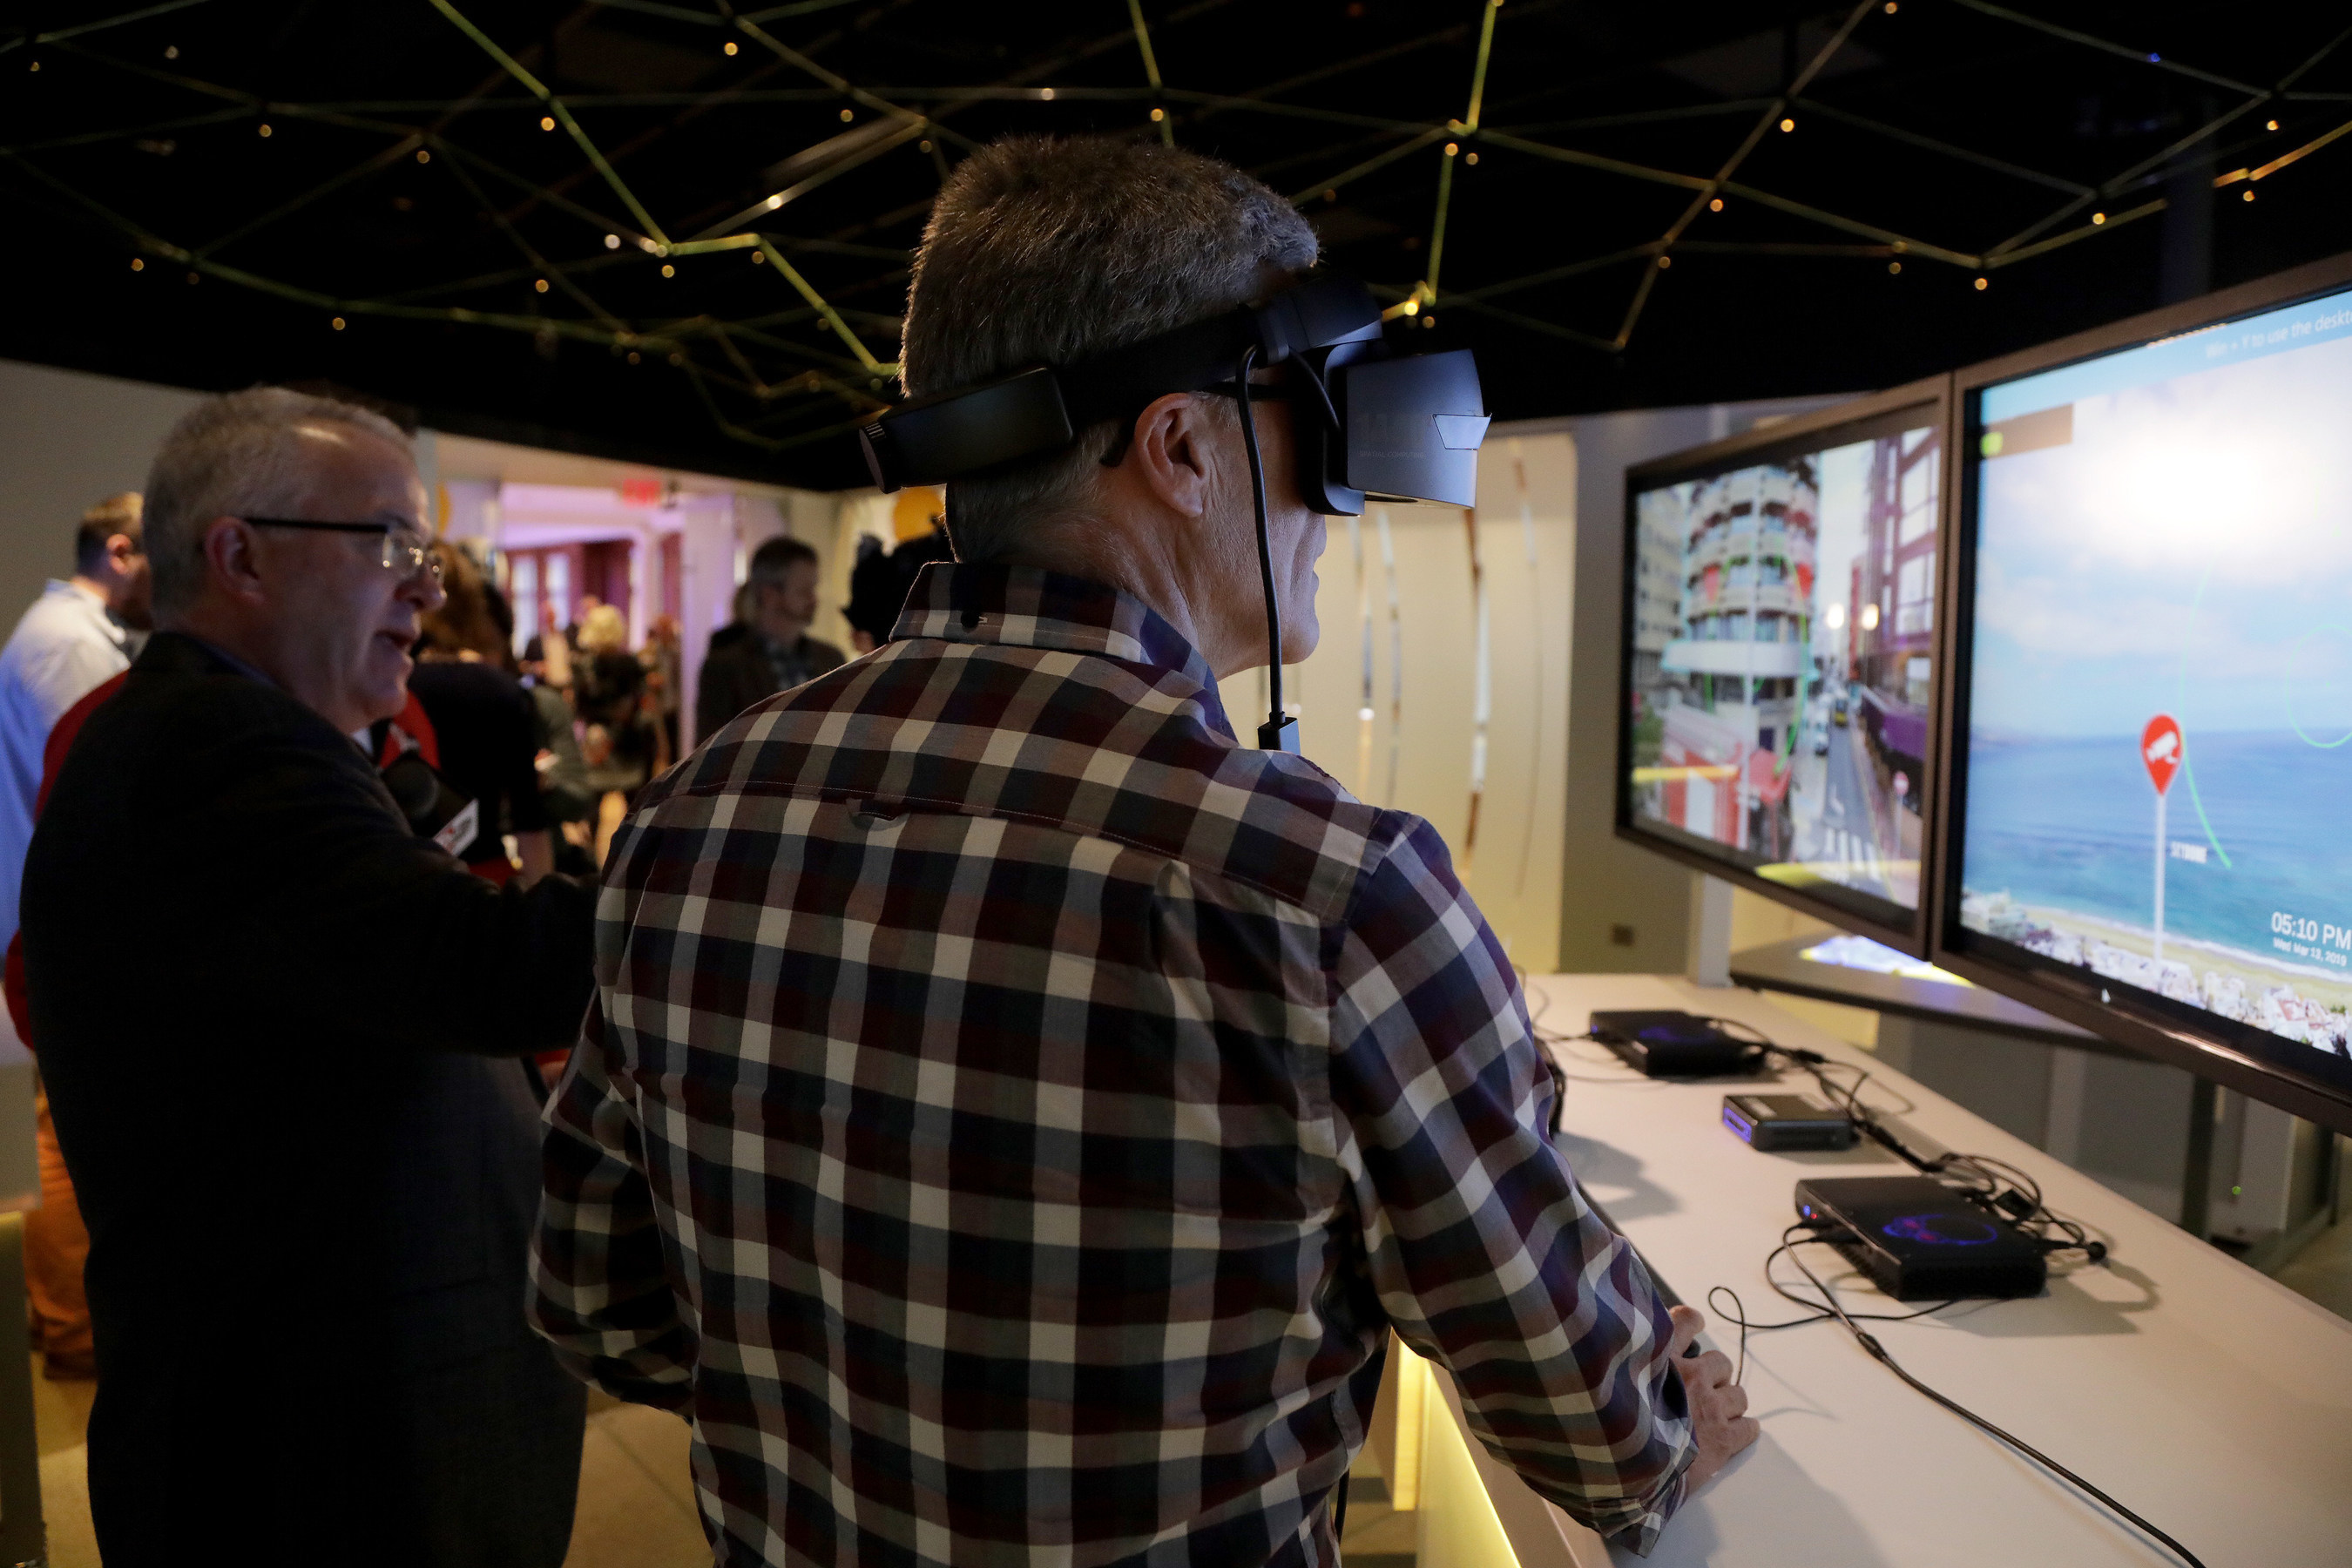 Guests take part in a virtual reality 5G demonstration at the Sprint 5G Experience.